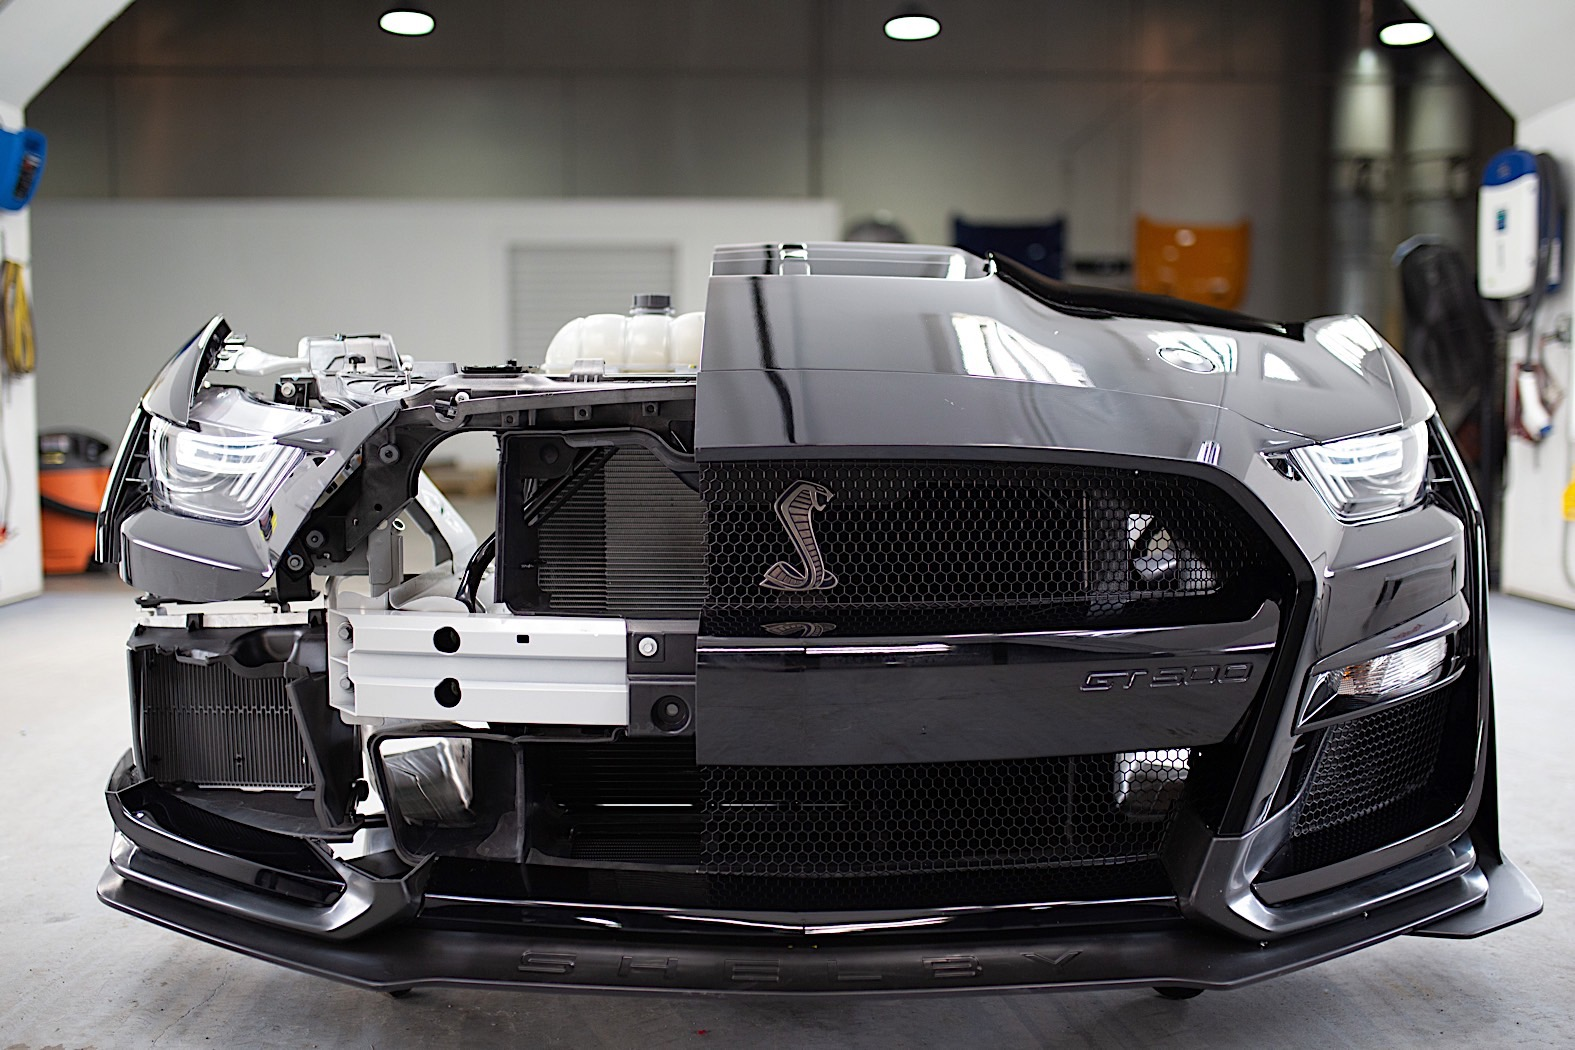 Mustang Shelby GT500 Officially Tops Out At 180 MPH